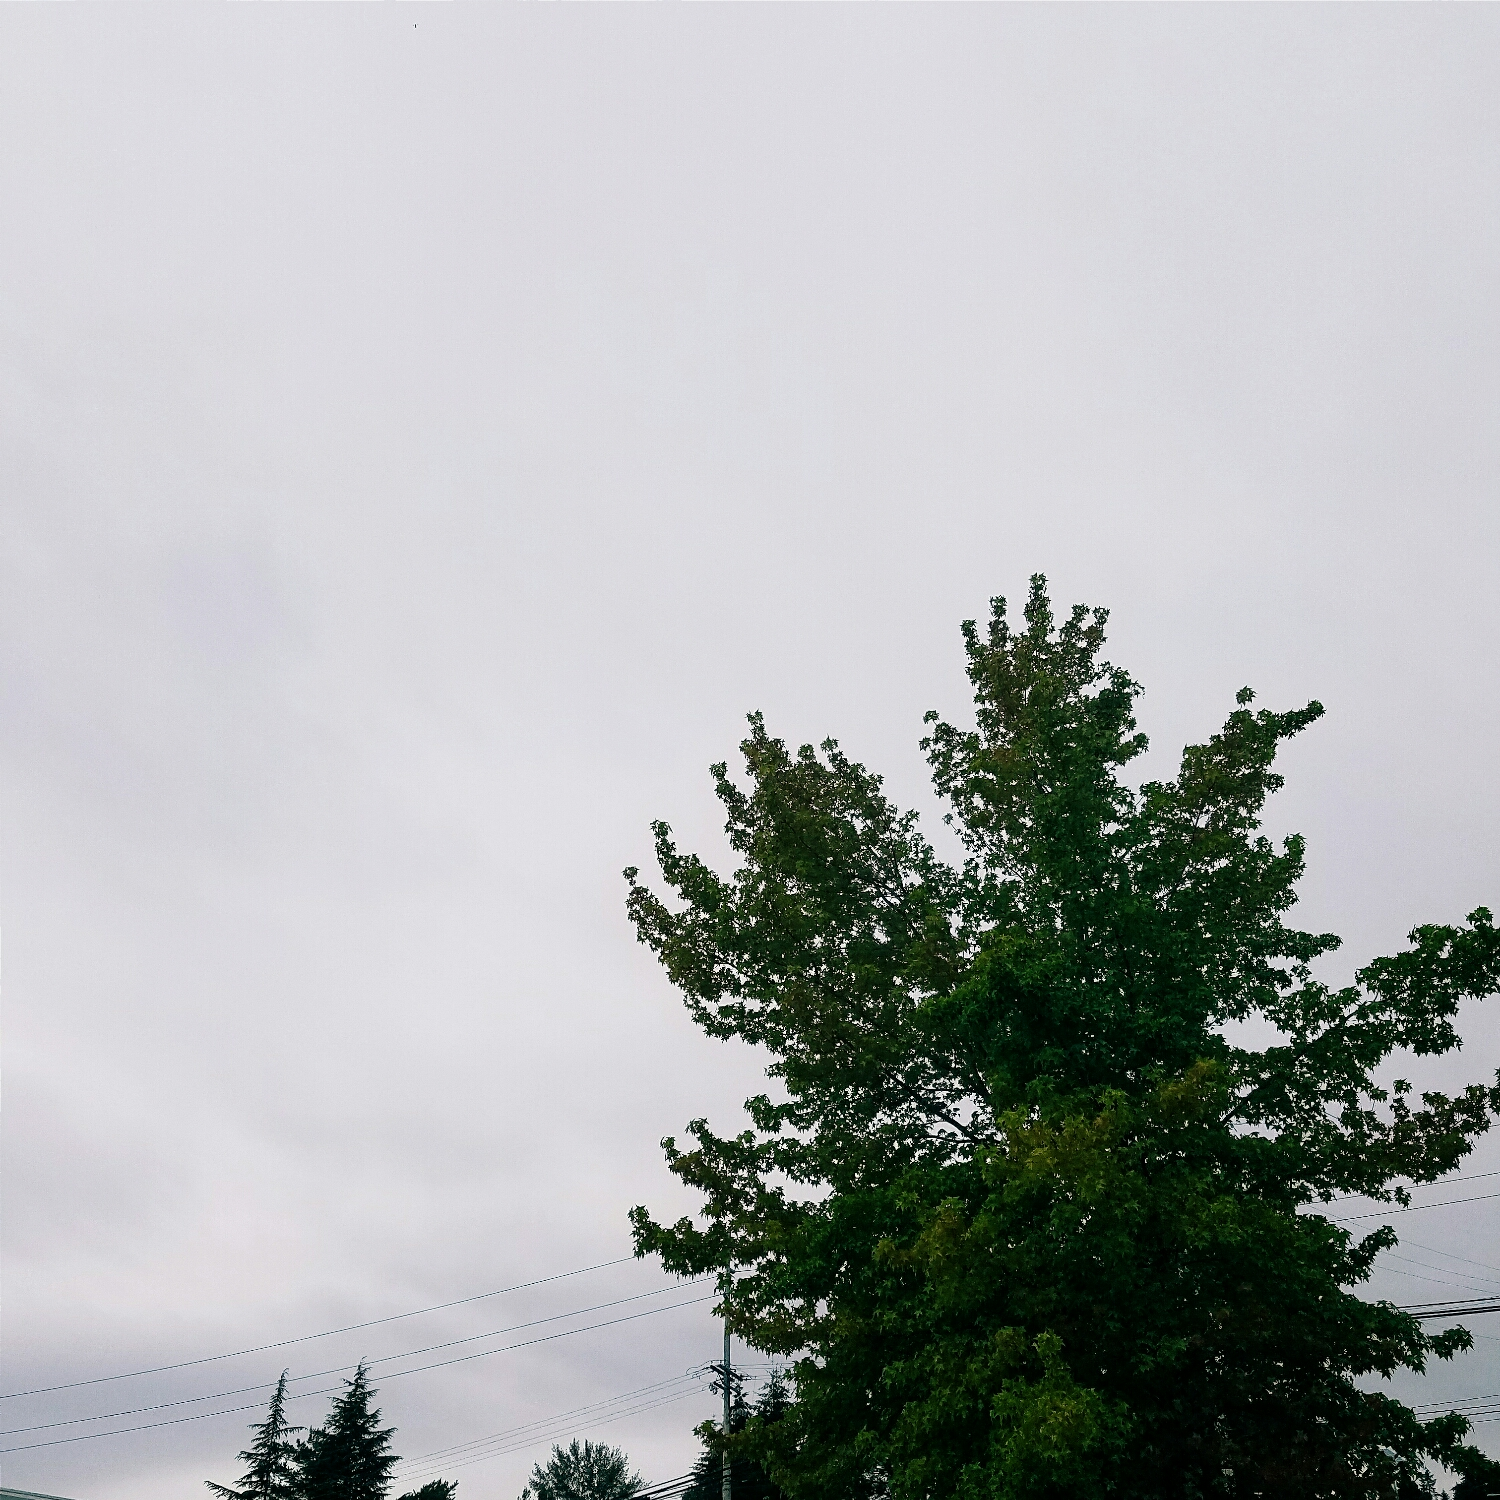 July in Seattle: chilly and overcast when I go to lunch...